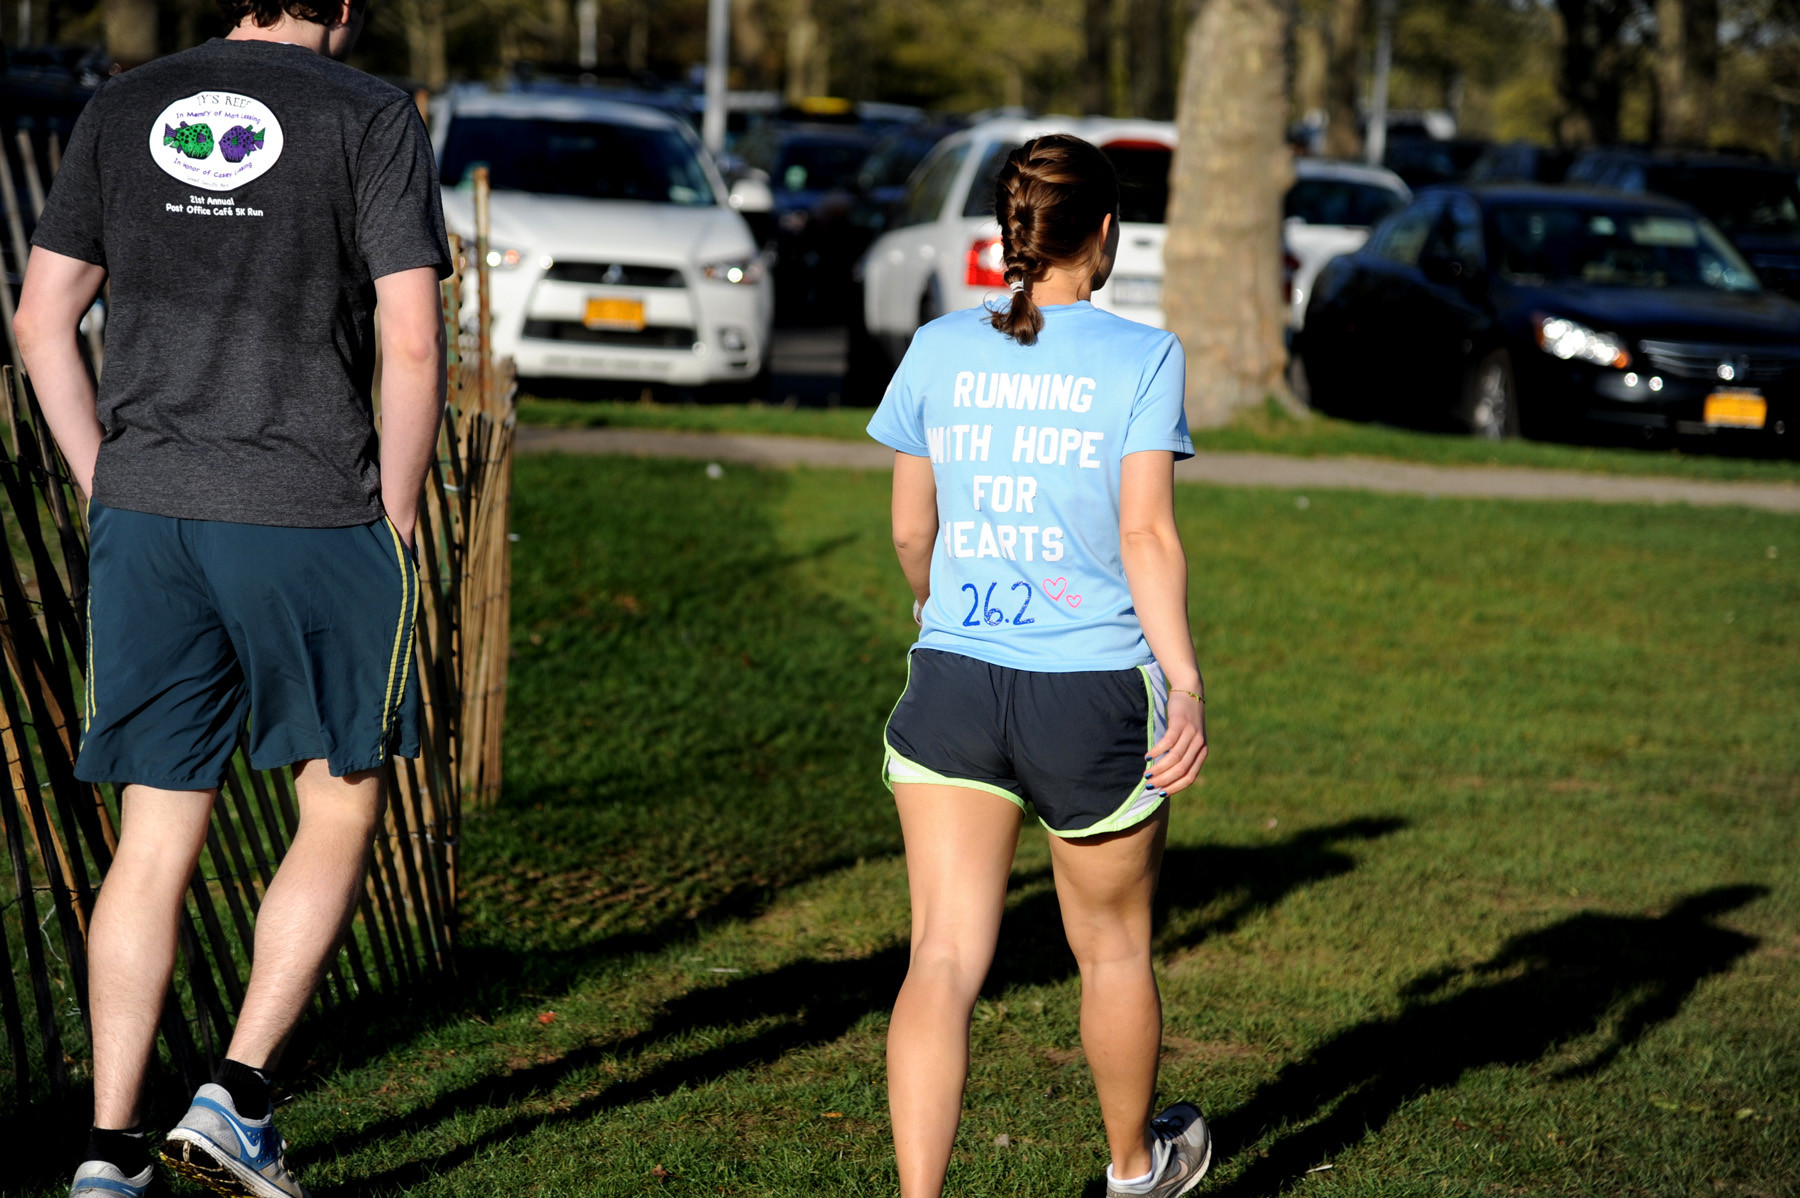 Many of the runners wore messages on their clothing, a means of tribute to the Boston victims.